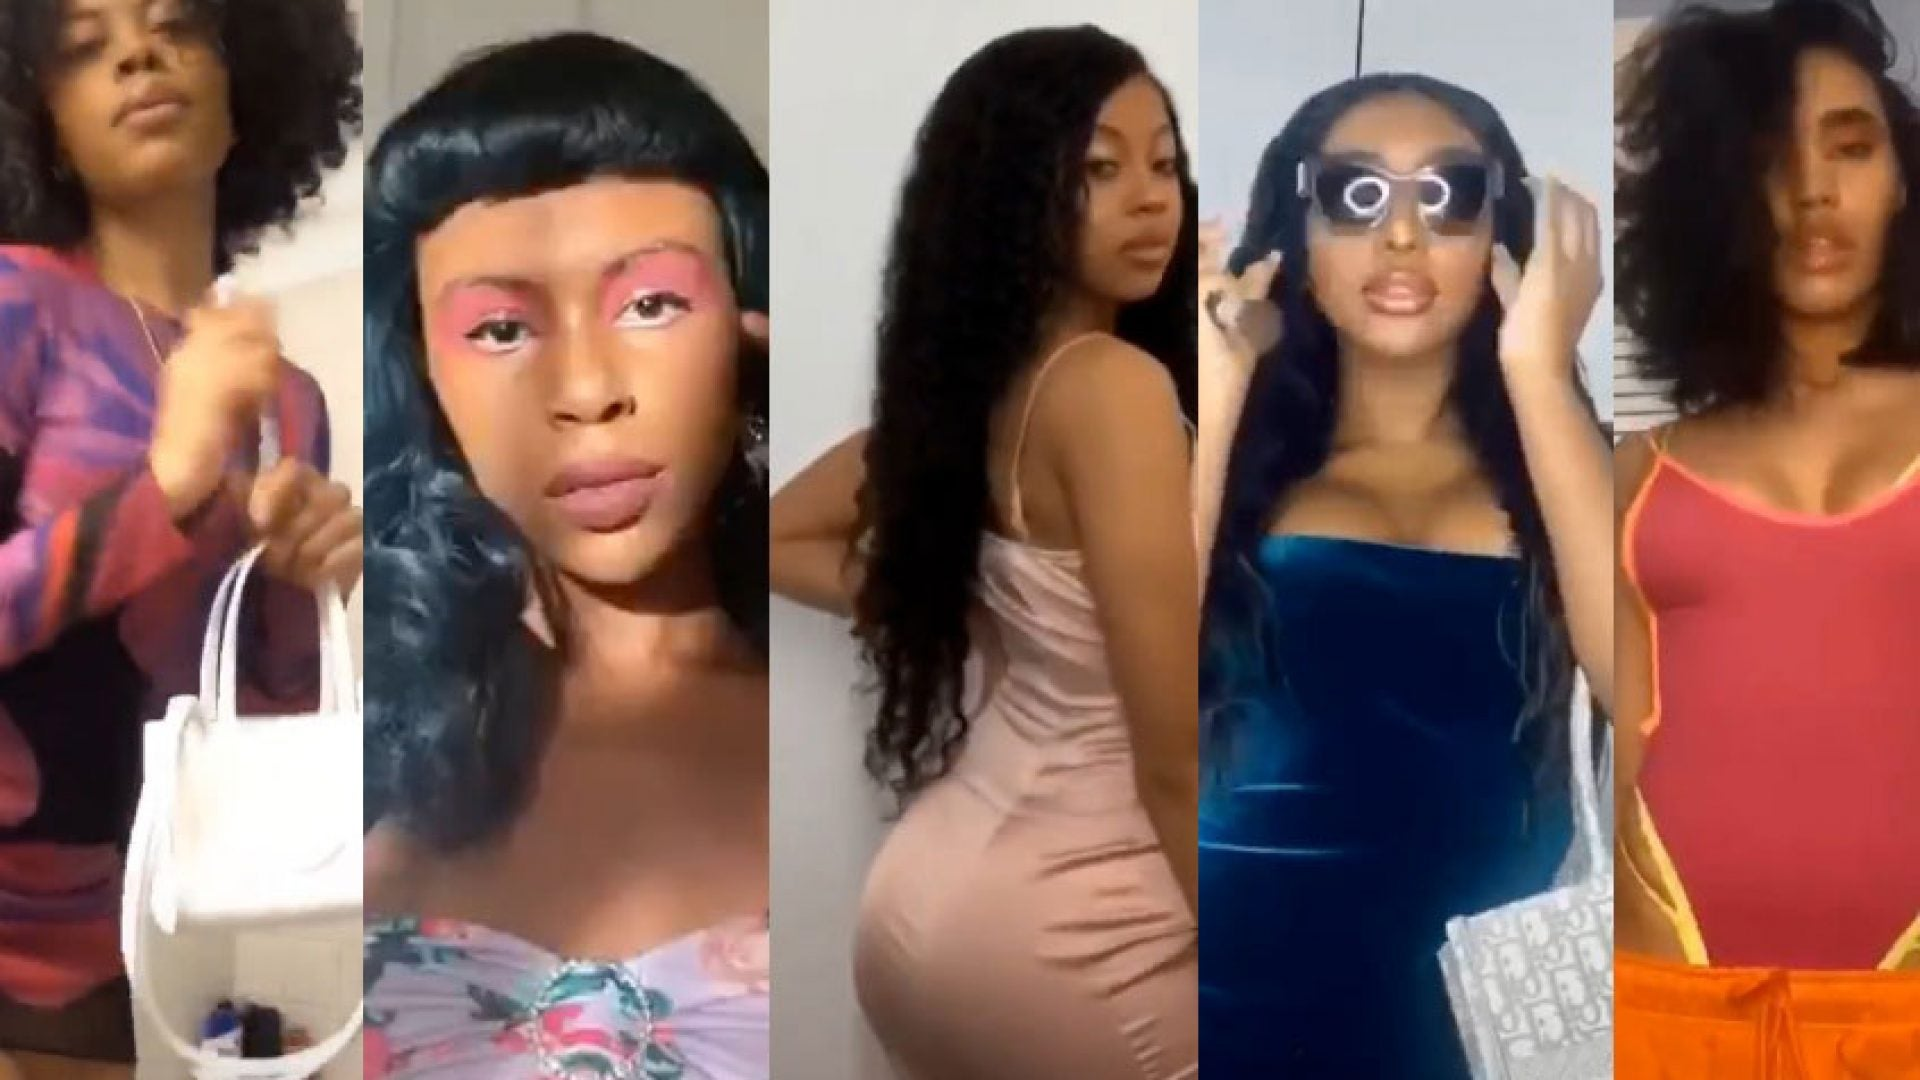 My Friends And I Attempted Tik Tok's #DontRushChallenge